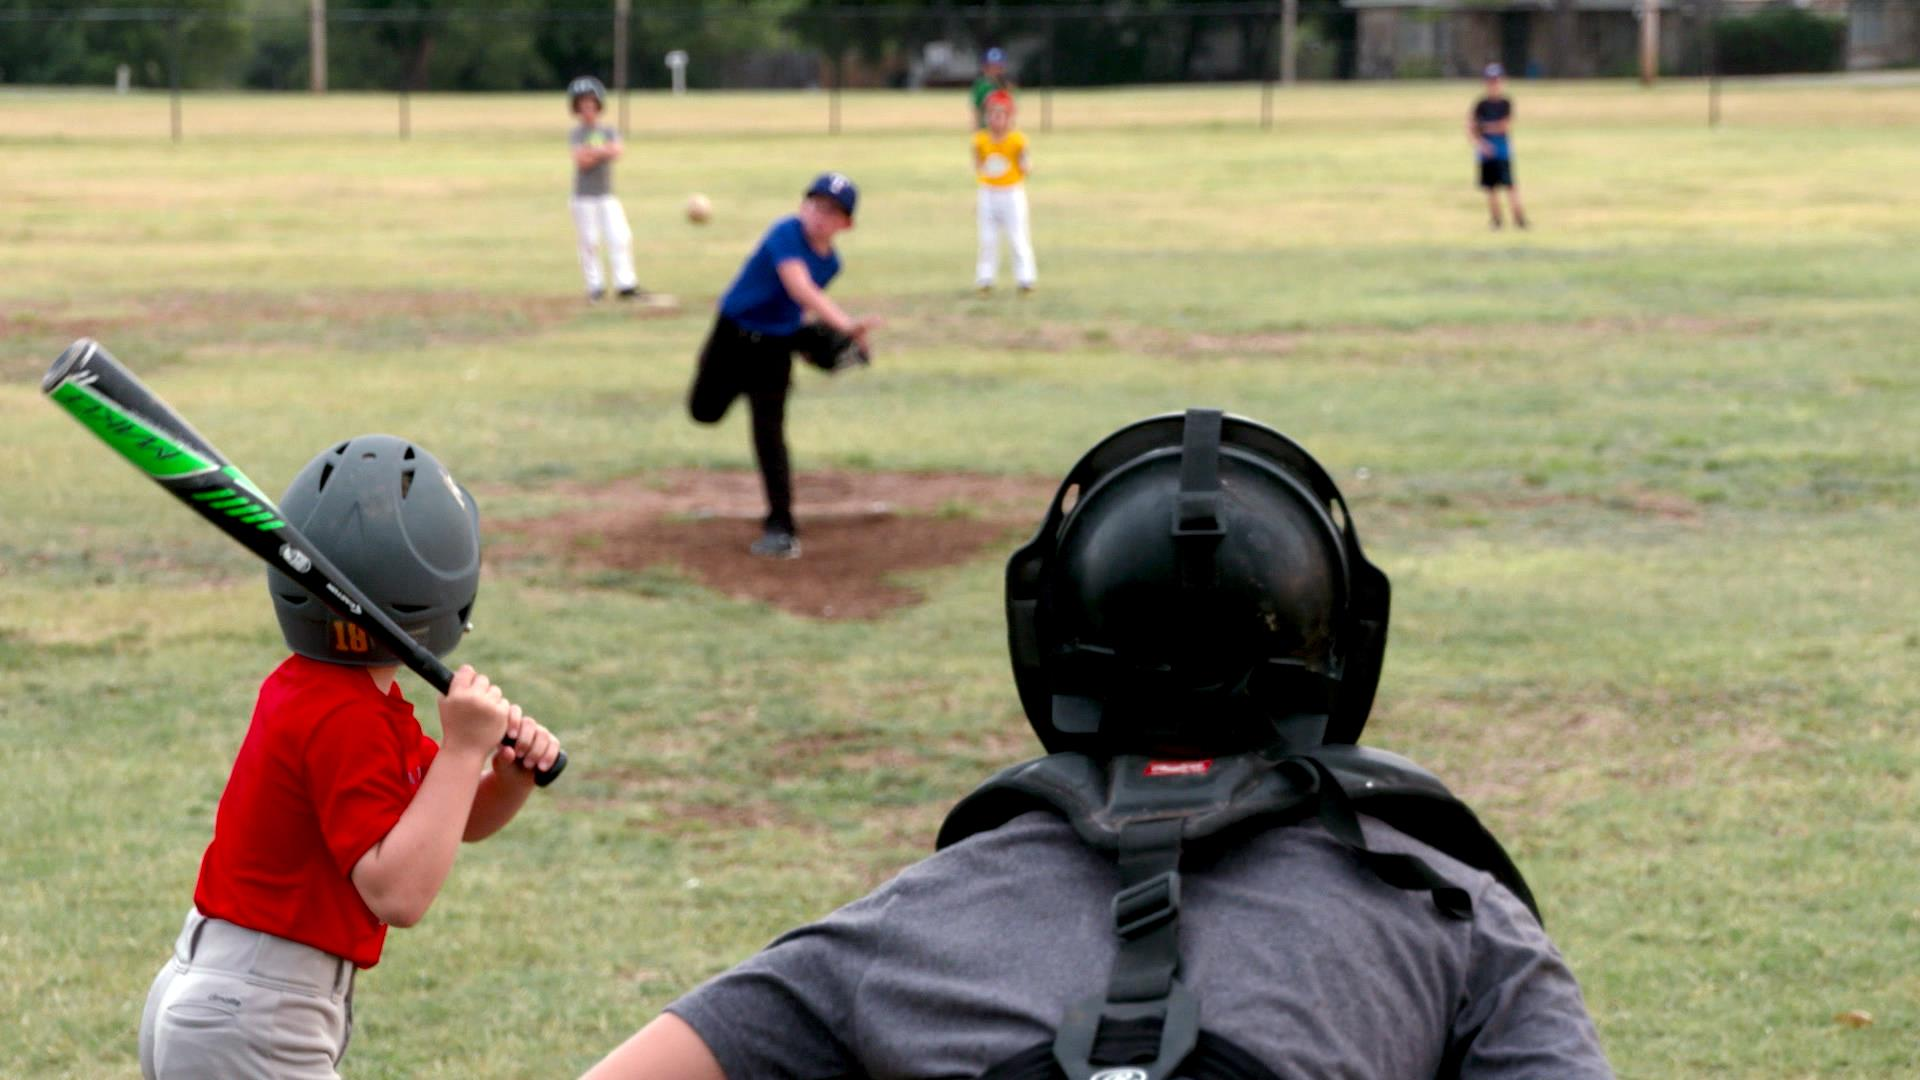 nbcnews.com - In 'unorganized baseball' games, kids play by their own rules